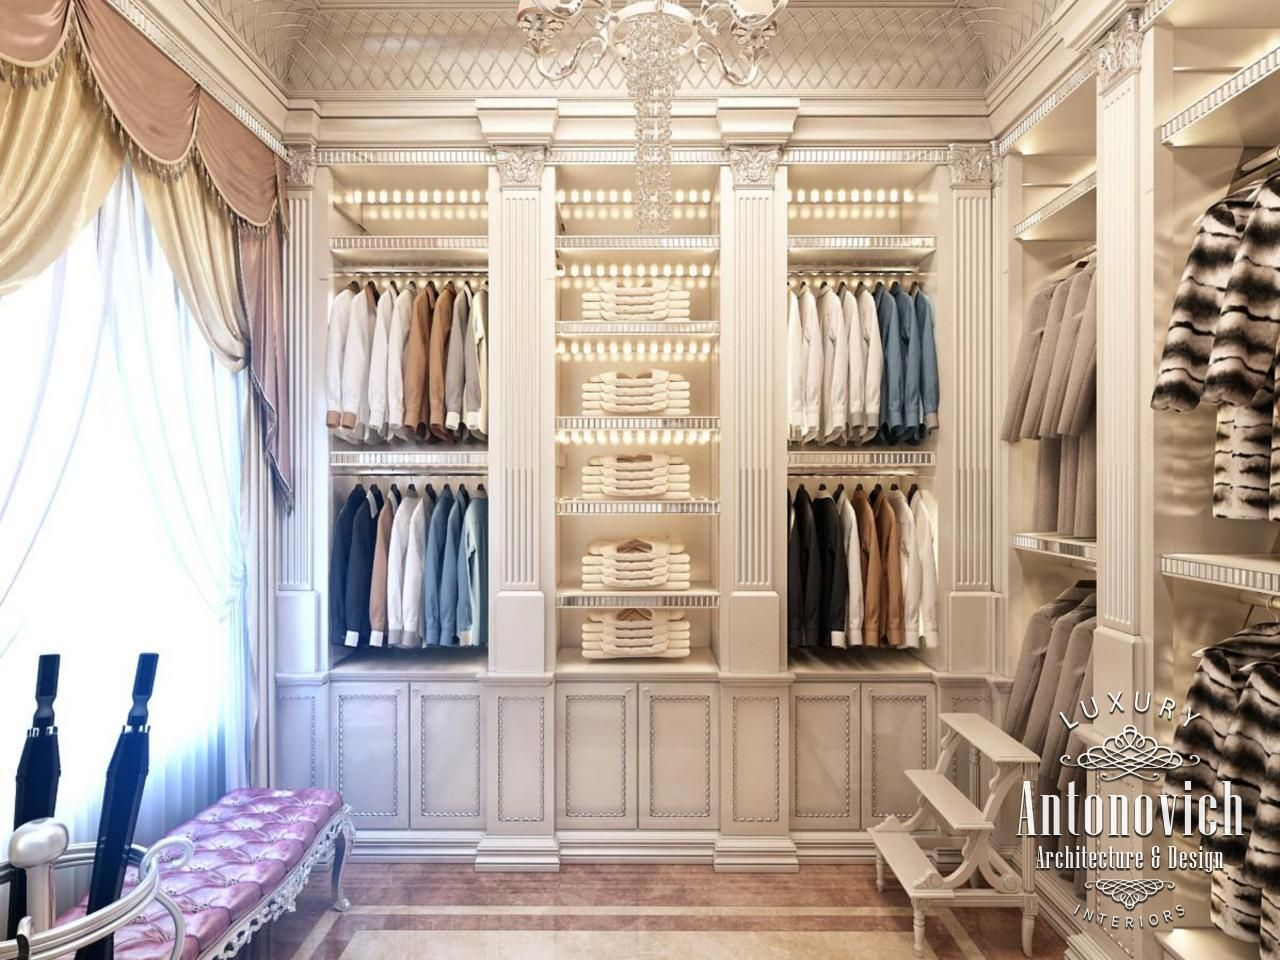 Beautiful dressing room design in dubai by luxury antonovich design - Interior Design Company In Dubai Consultans And Designers Luxury Antonovich Design Interior Design Pinterest Interior Design Companies